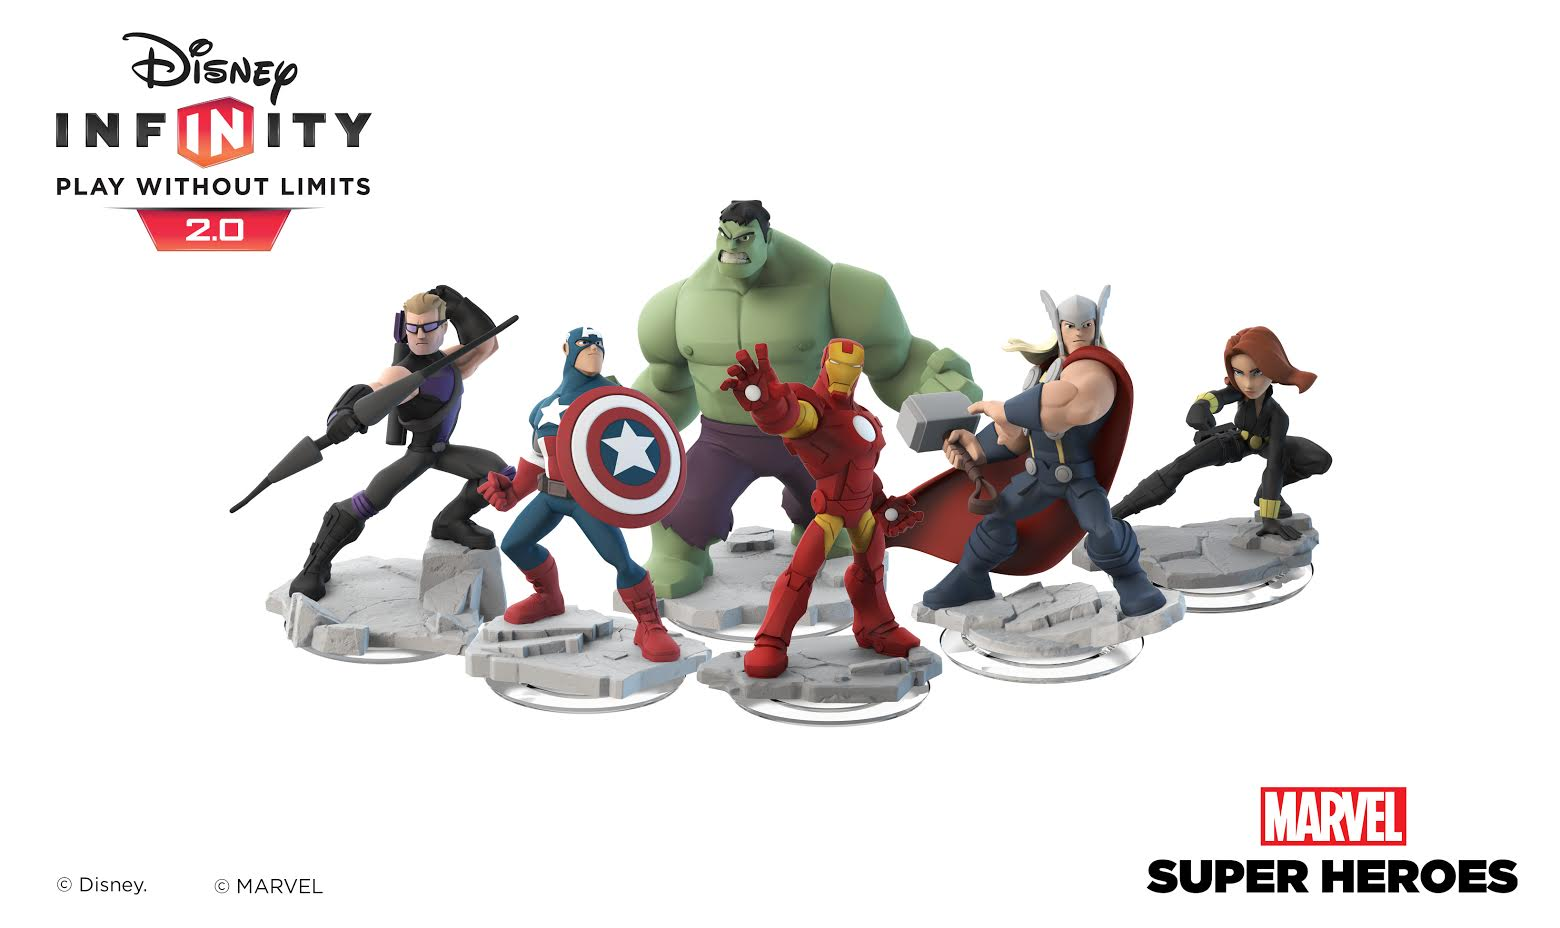 Look at Disney Infinity 2.0 Marvel Super Heroes toys and power discs